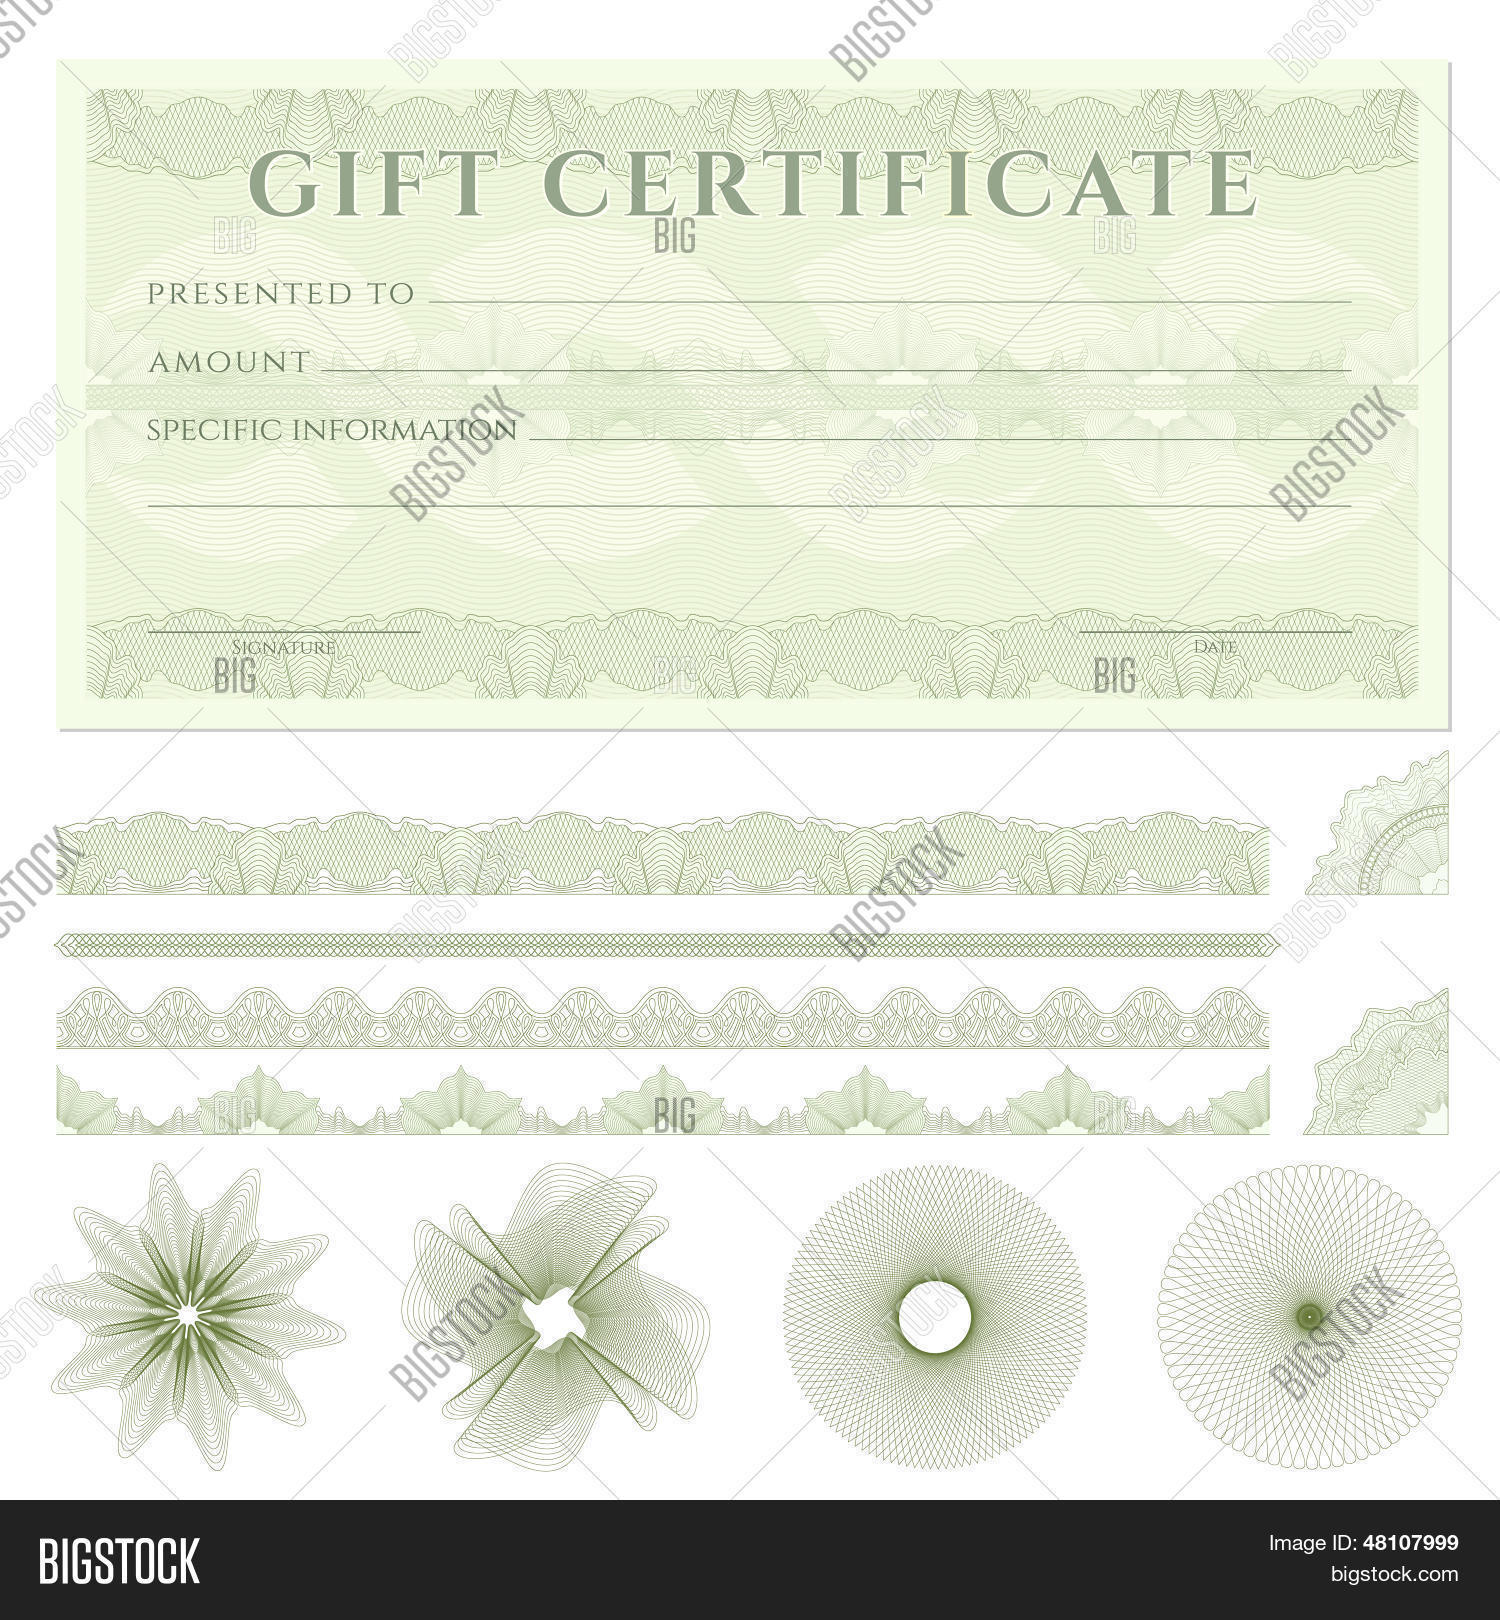 Gift certificate voucher coupon vector photo bigstock gift certificate voucher coupon template banknote money currency cheque yelopaper Images